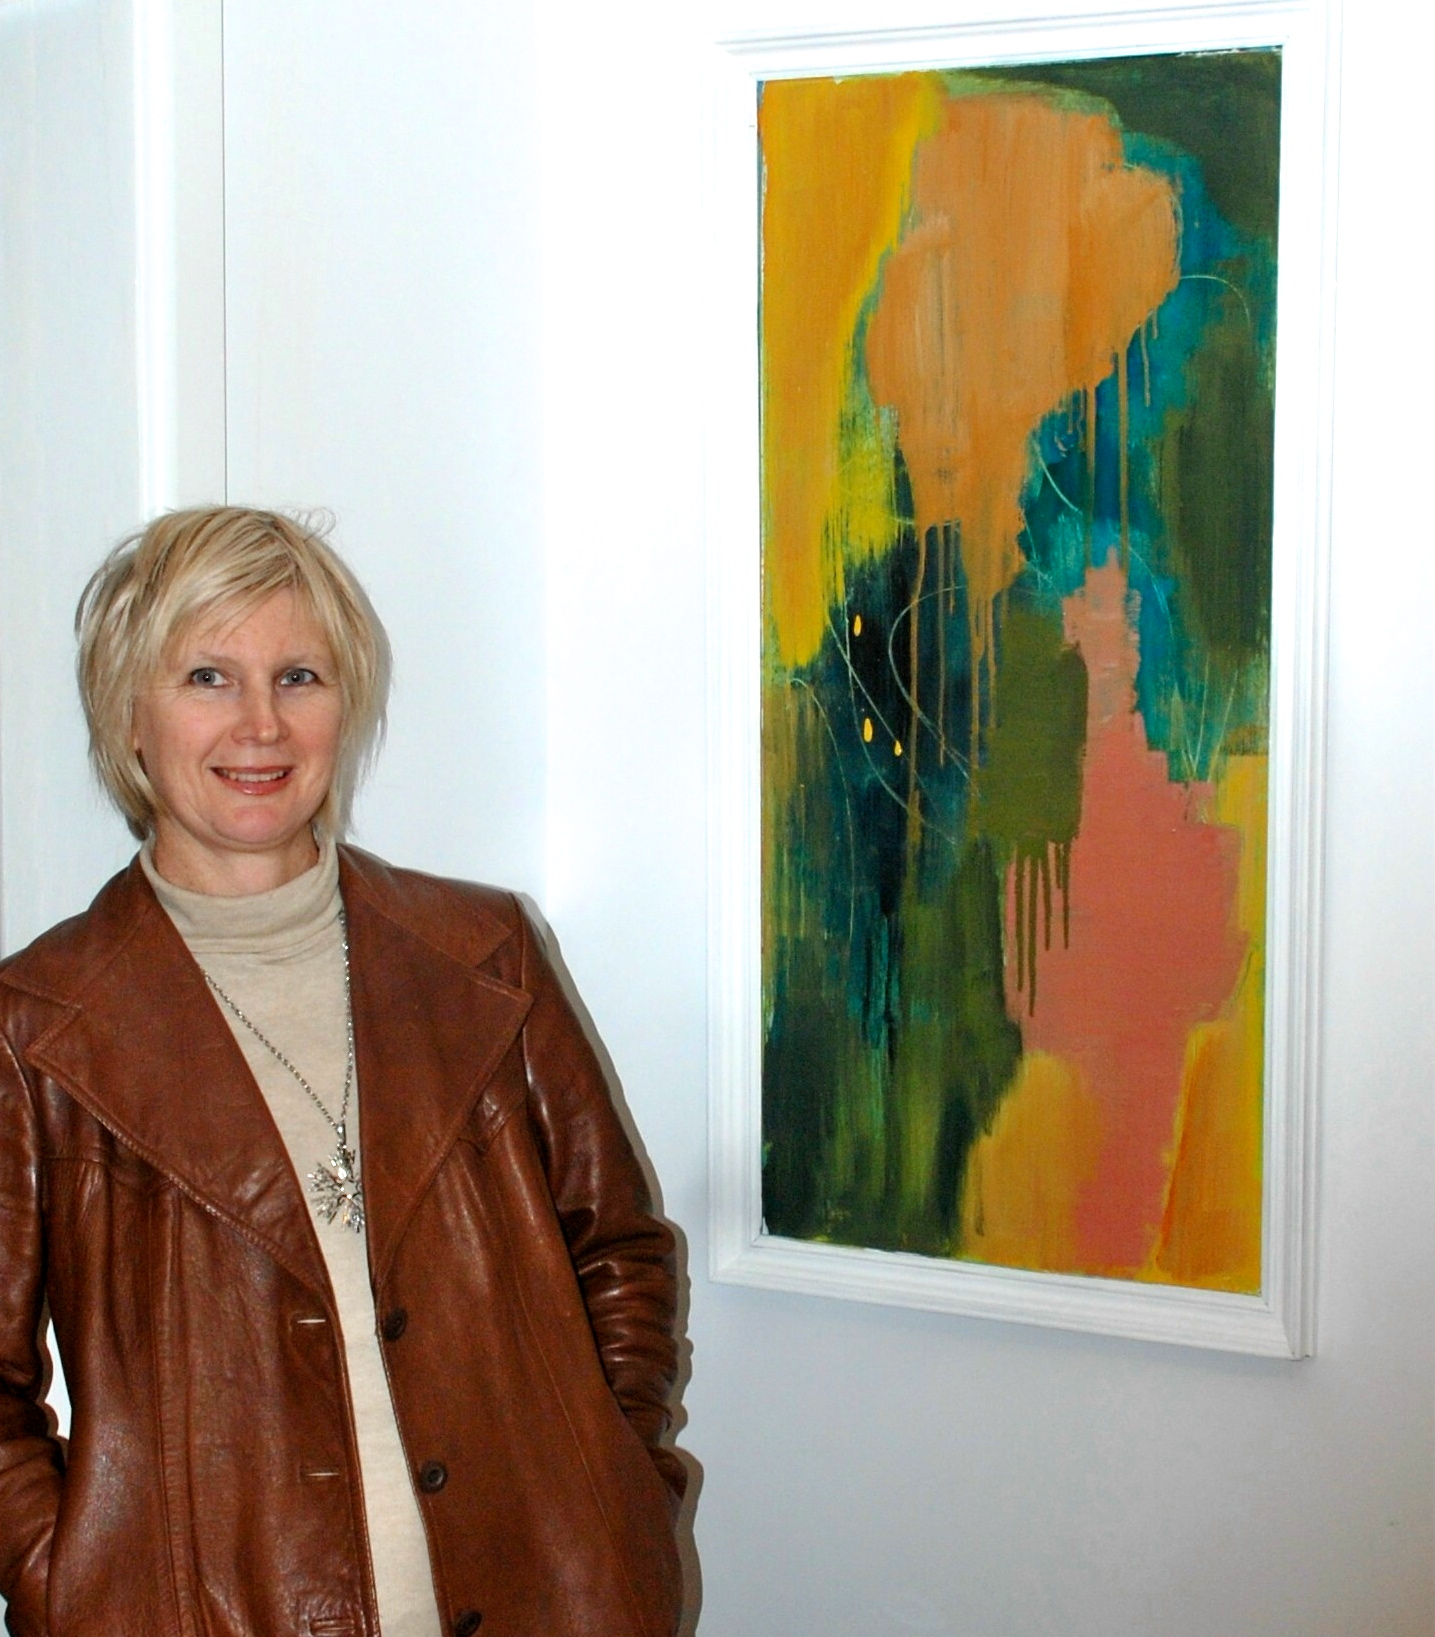 Artist Carolyn O'neill with her Art